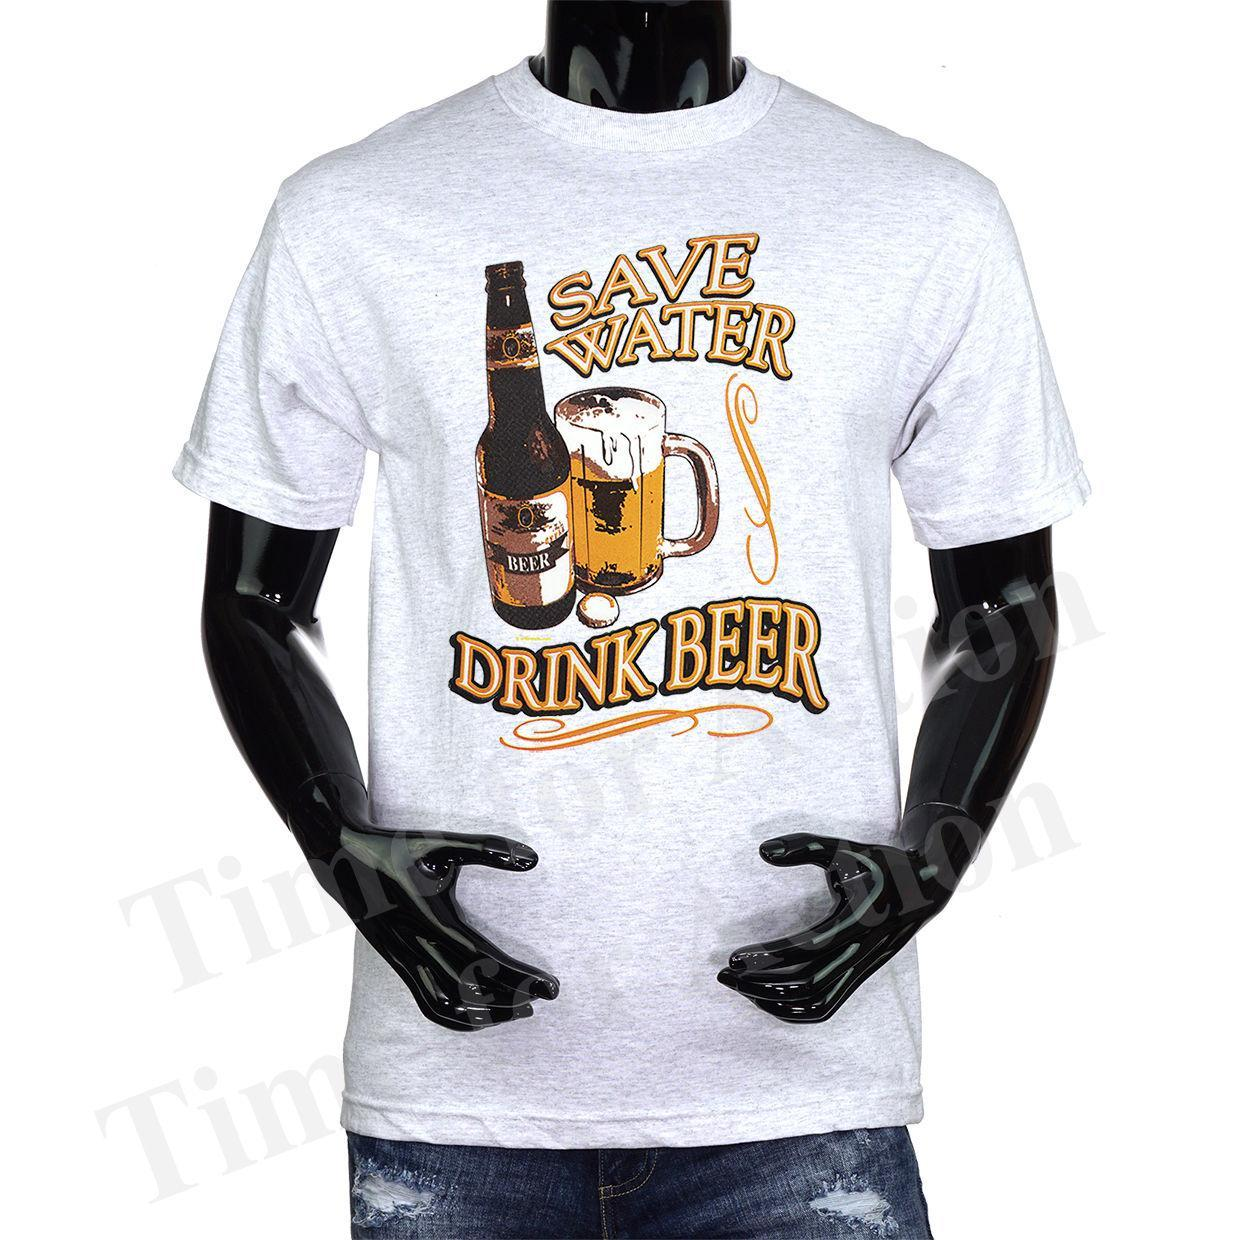 641c207d Save Water Drink Beer Funny Joke Humor T Shirt Summer Short Sleeve Shirts  Tops S~3Xl Big Size Cotton Tees Funny Printed T Shirts Cool Tee From Jie70,  ...